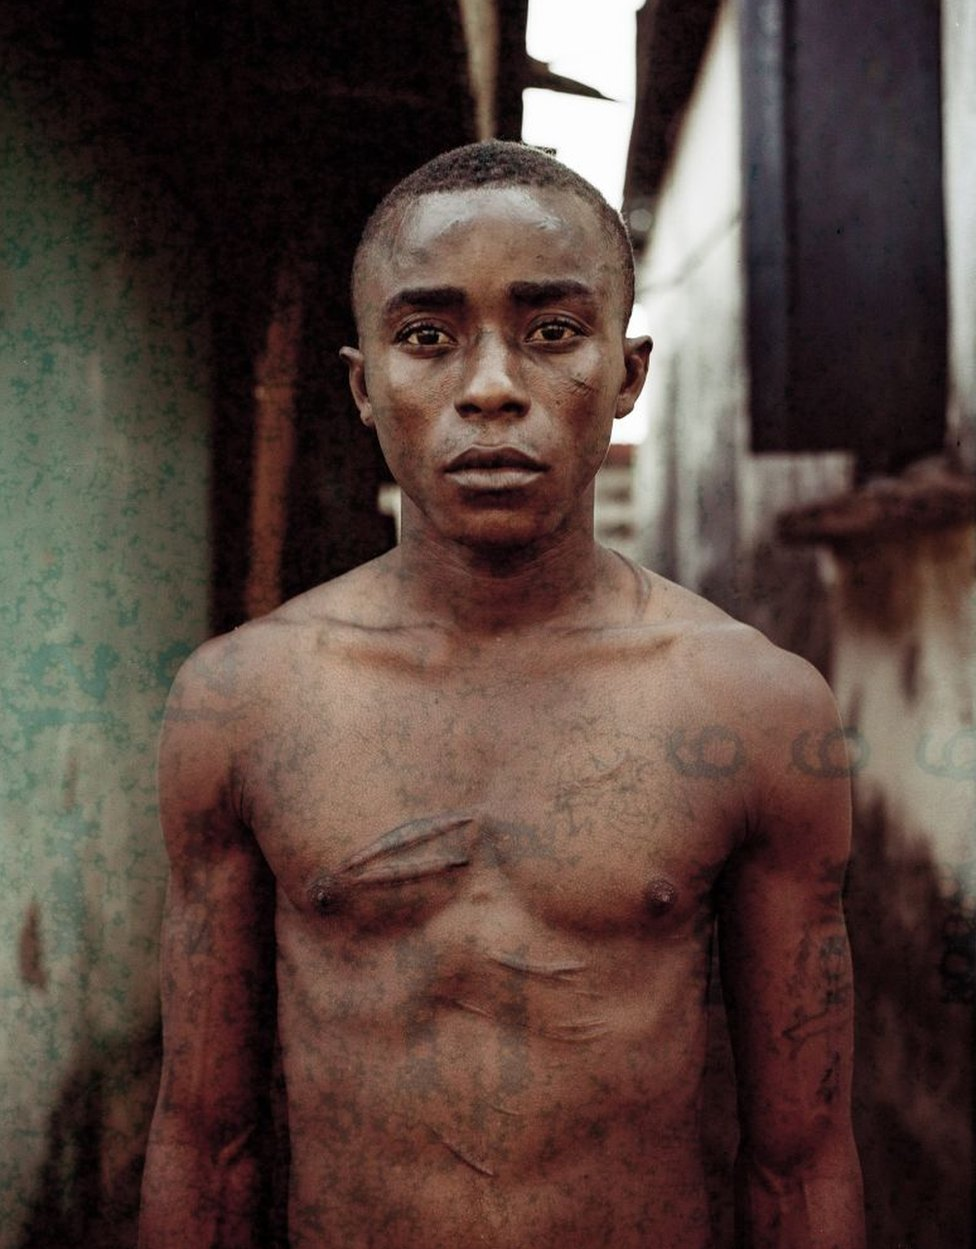 A young man, covered in scars, stares into the camera